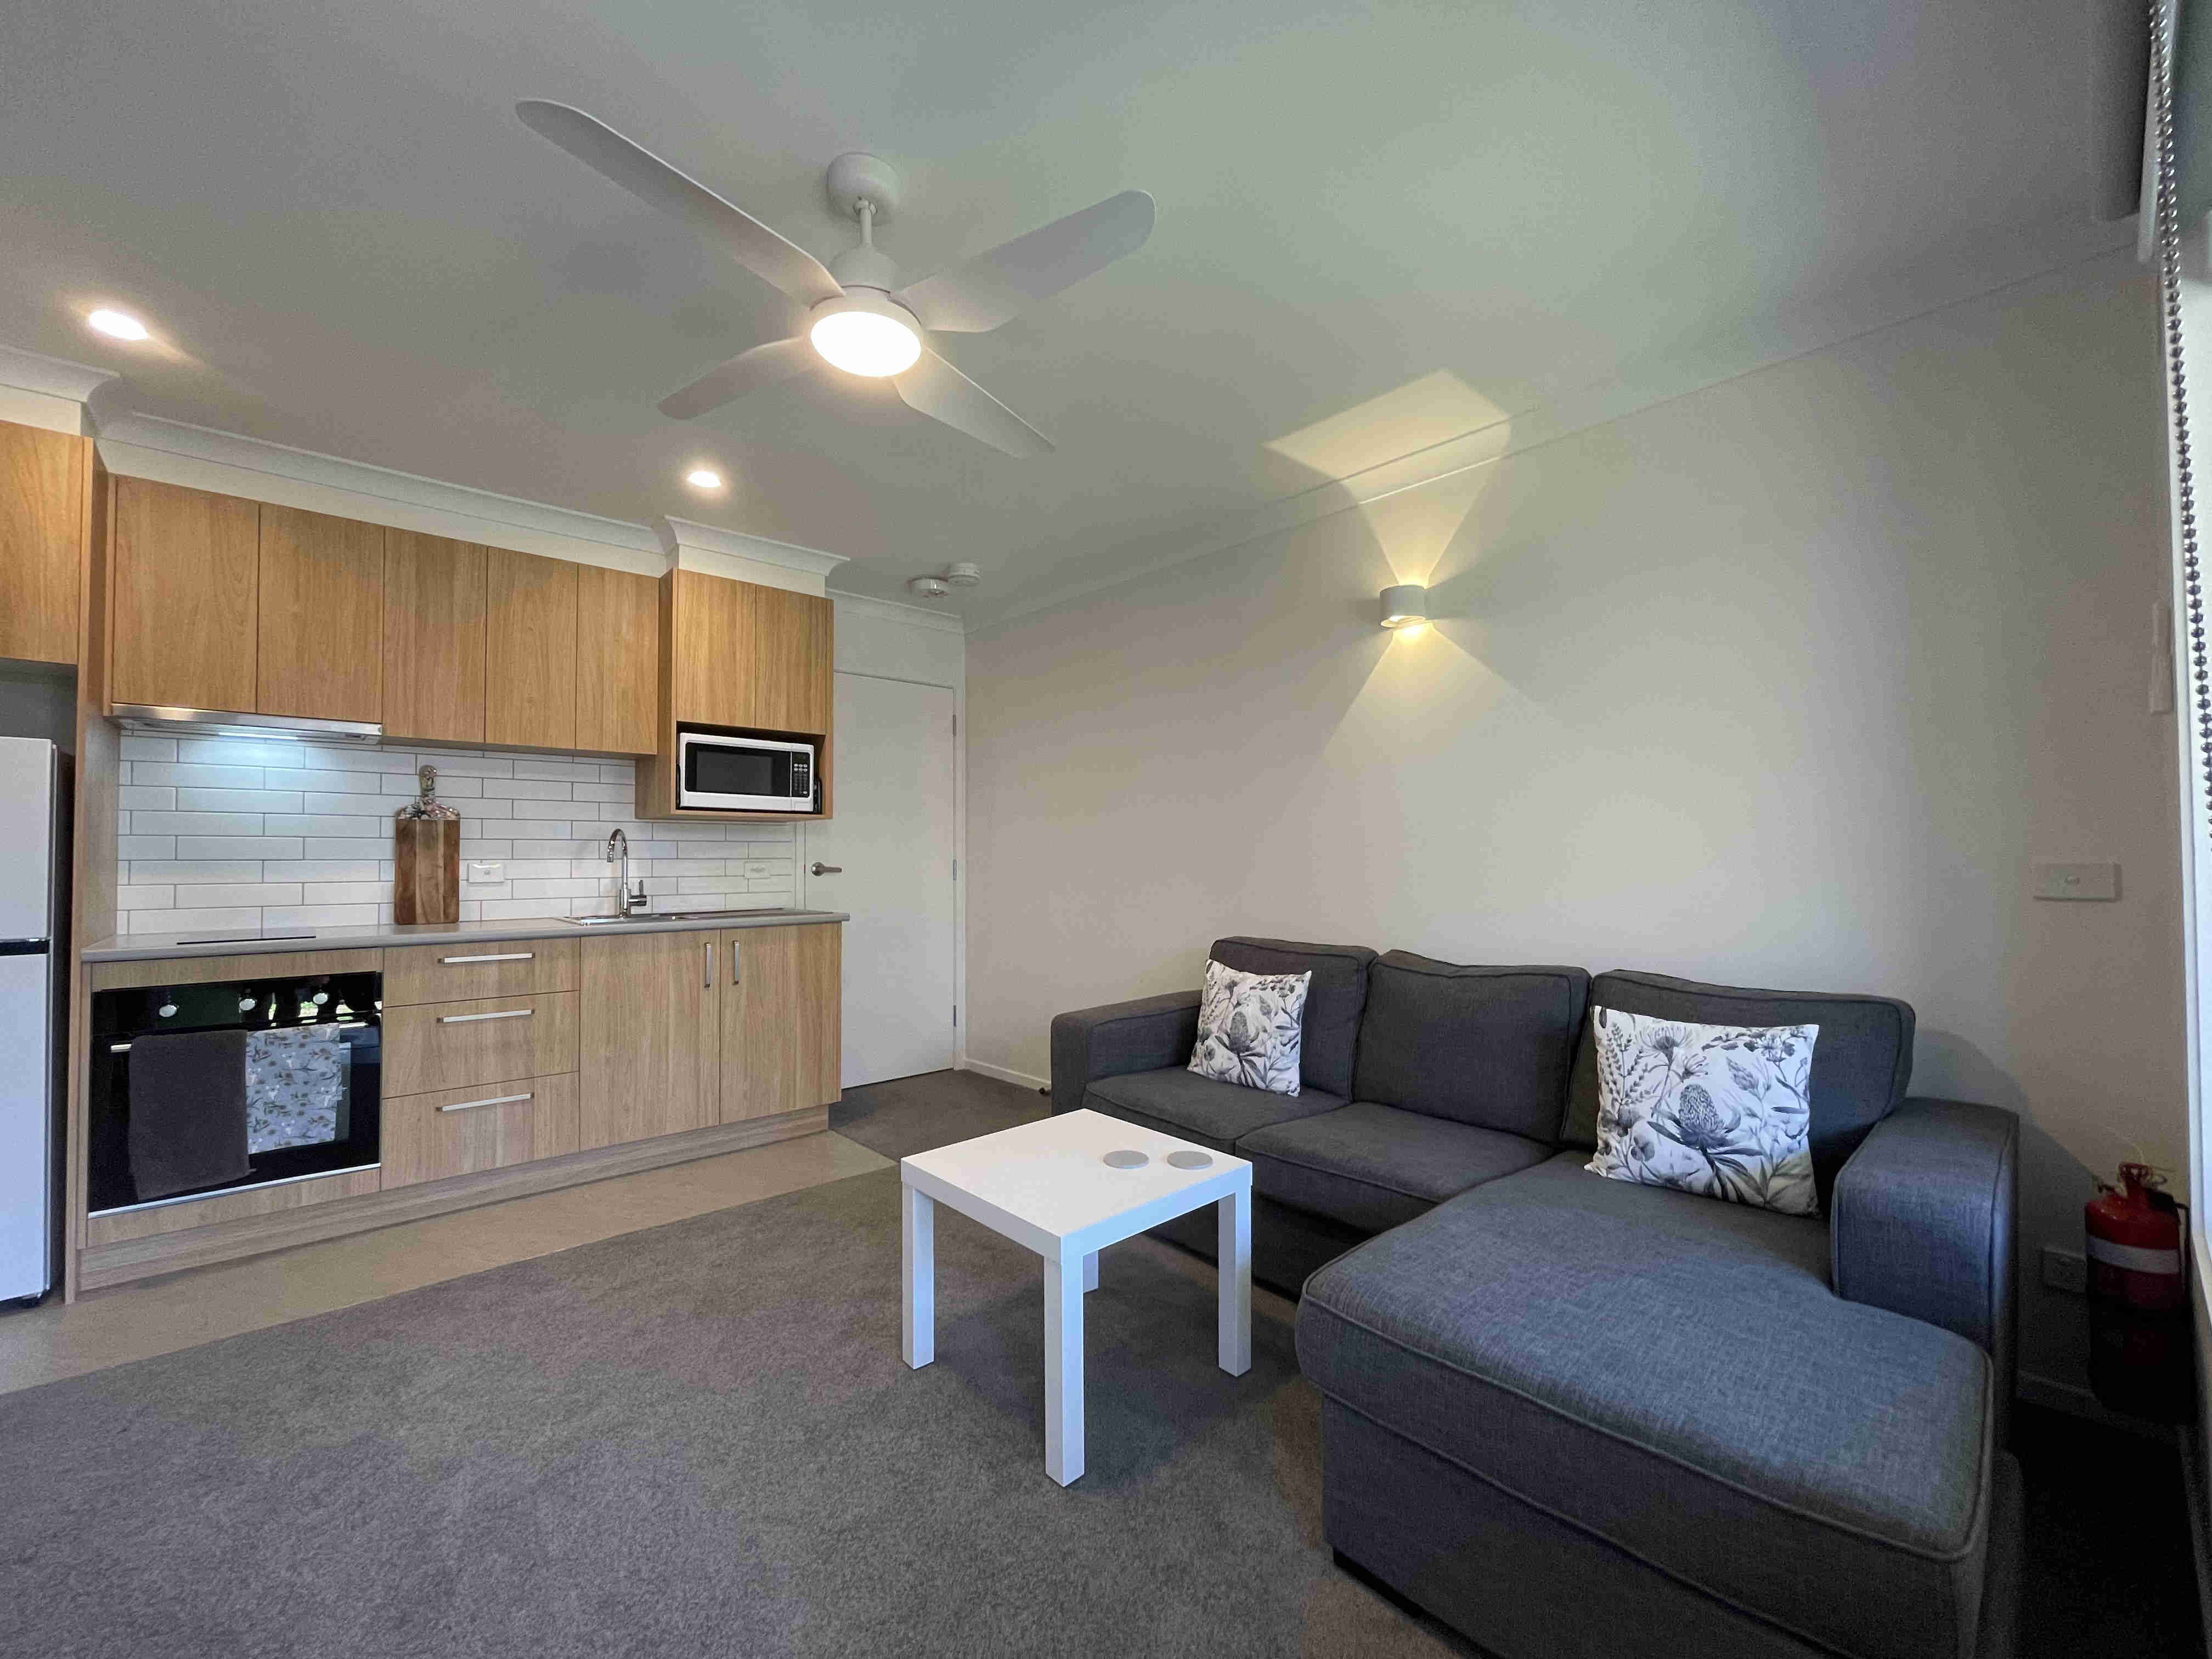 Lounge area and kitchen in one bedroom apartments with one king bed